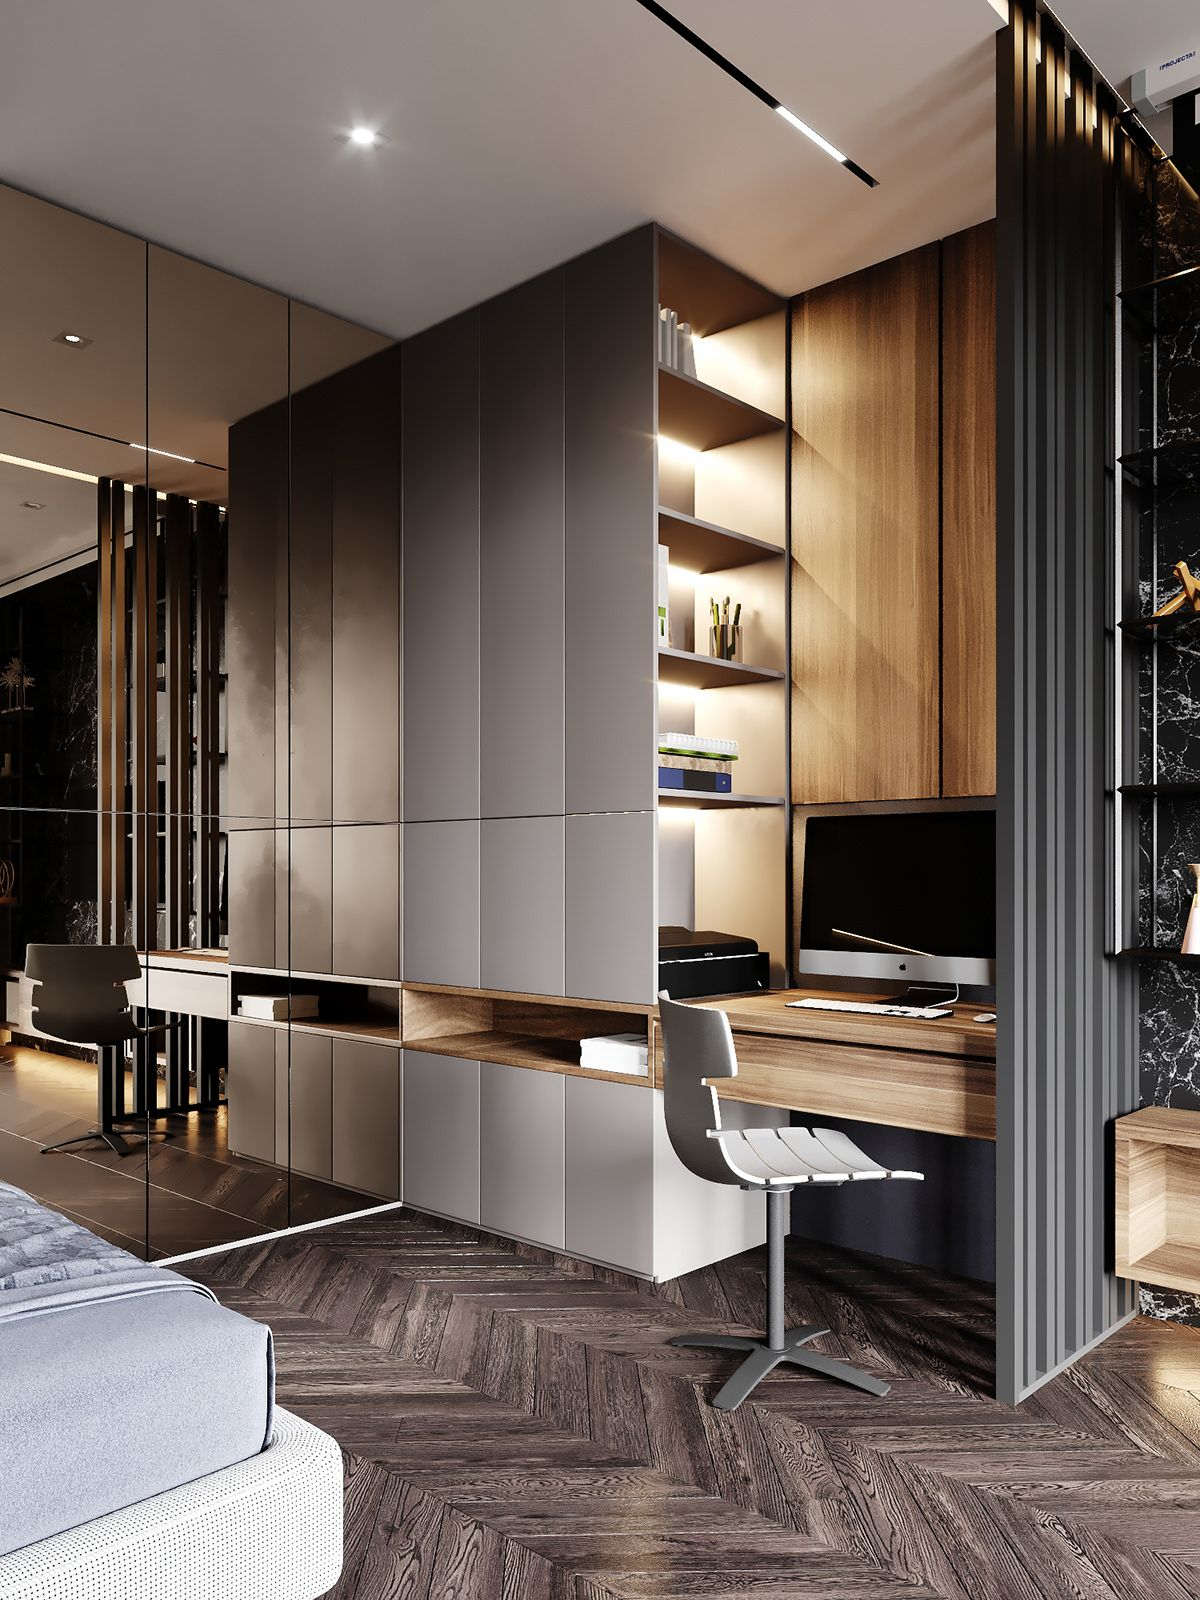 Hotel Room Design: INFINITY On Behance